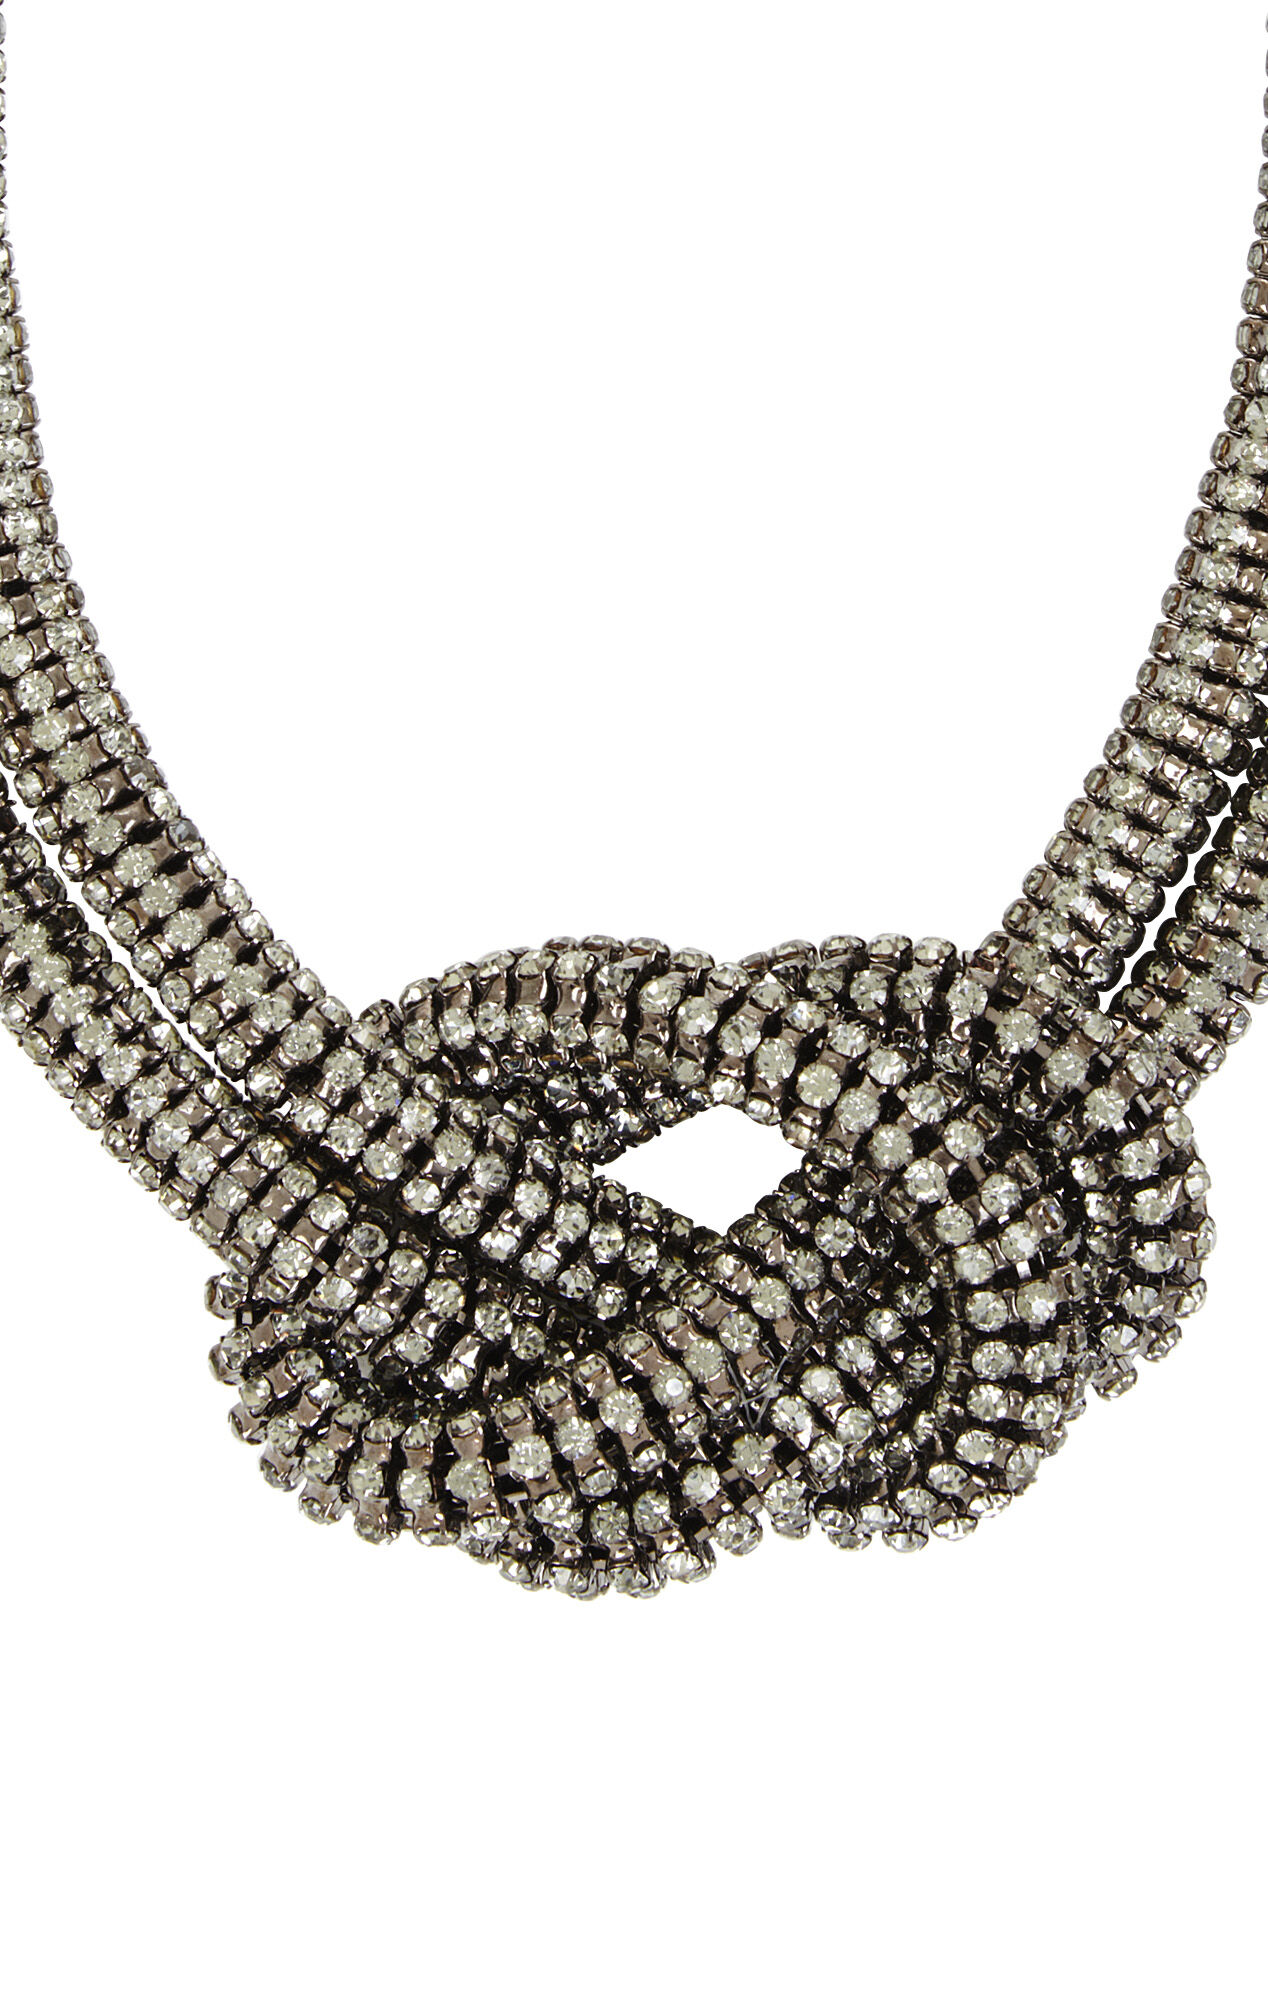 Rhinestone Knot Necklace